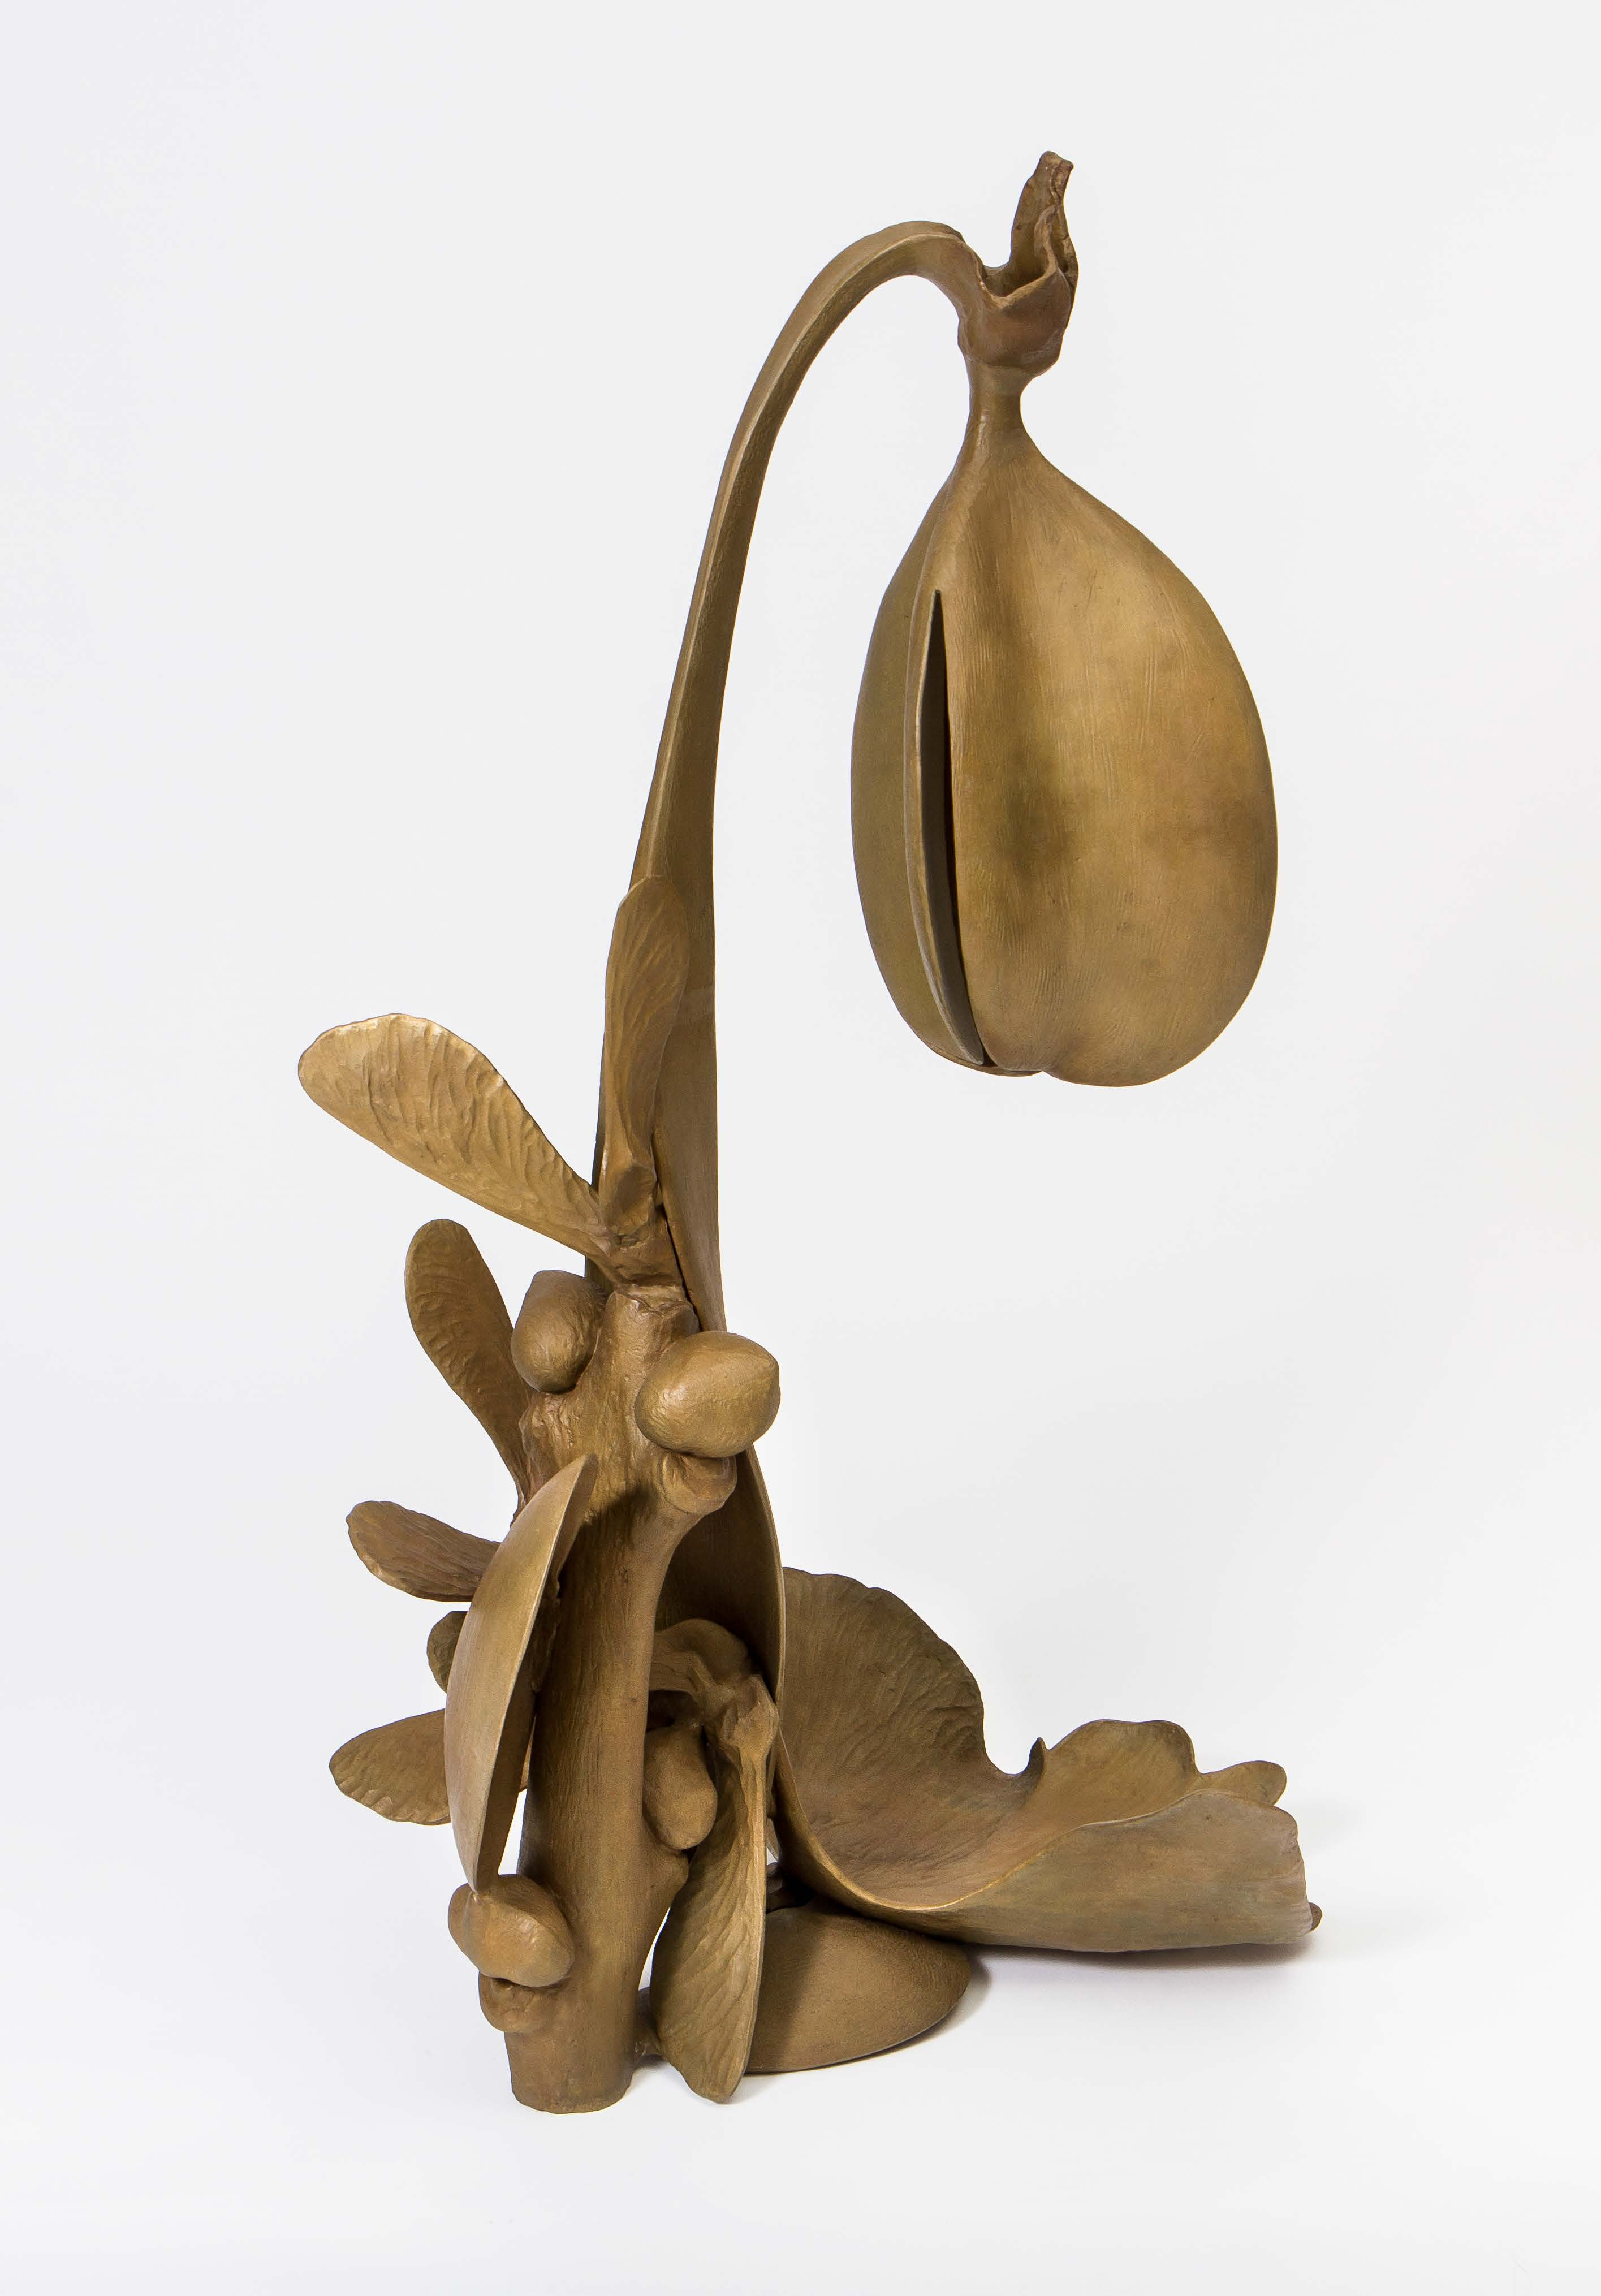 Carl Boutard, 5 – 10 – 20: 1, 2010, bronze, 105 x 60 x 45 cm, edition of 3